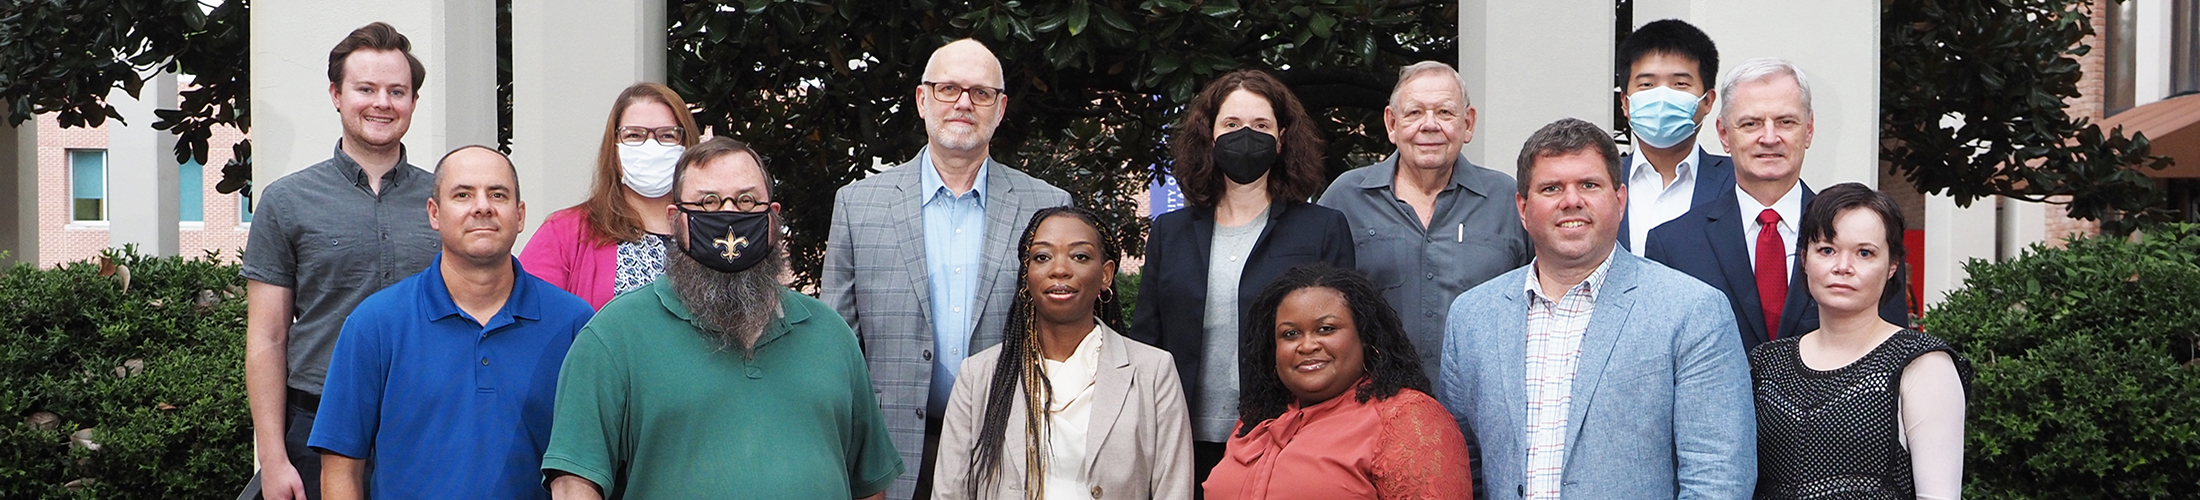 Group image of Political Science and Criminal Justice faculty standing outside.